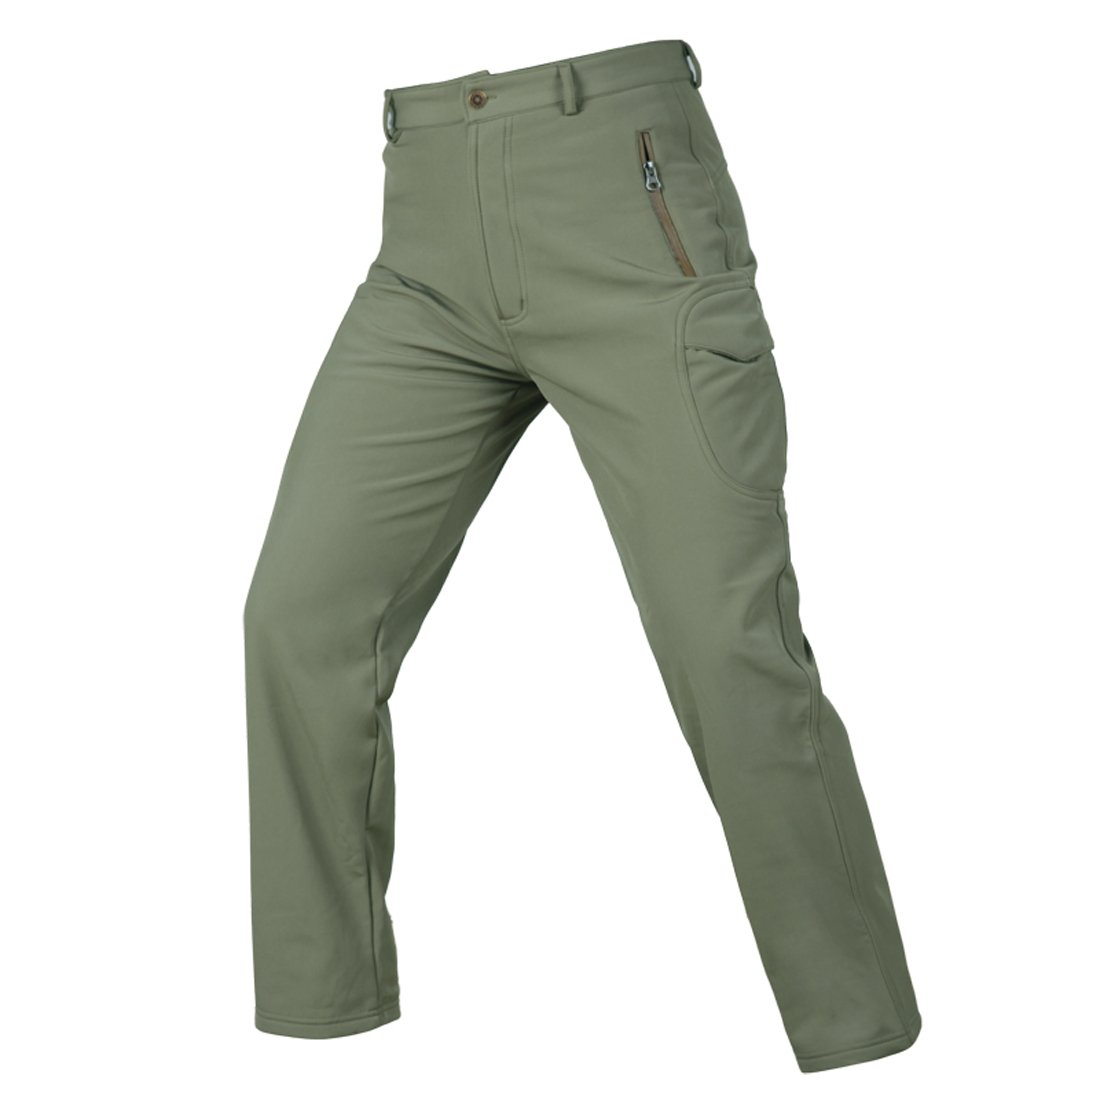 MAGCOMSEN Mens Waterproof Outdoor Fleece Hiking Climbing Trousers Camouflage Soft Shell Mens Tactical Pants